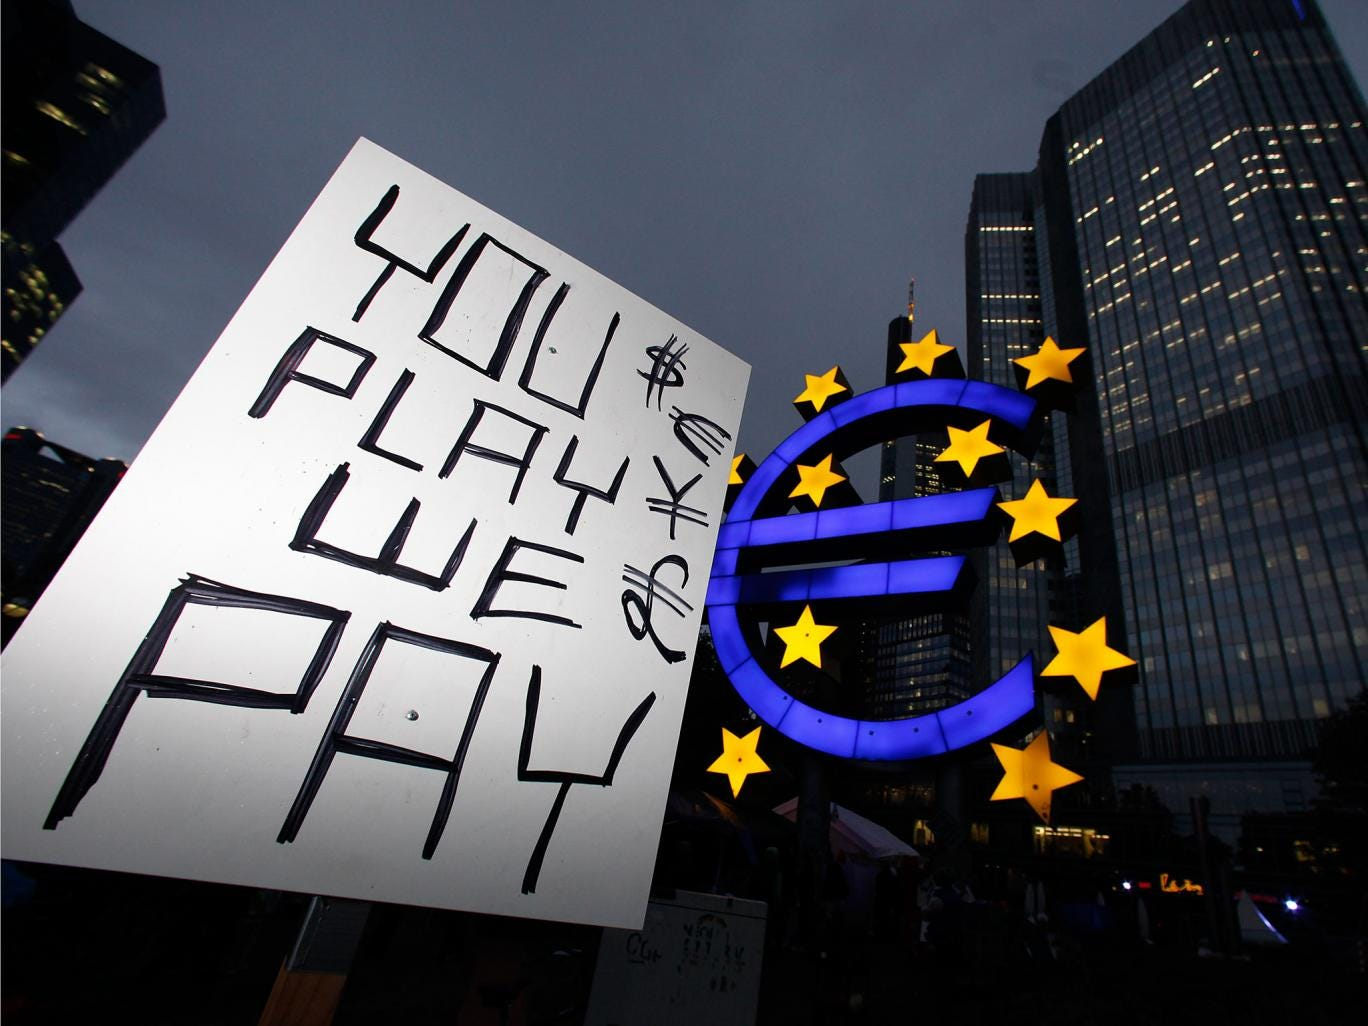 The European Central Bank was surrounded by protesters demonstrating against economic and financial policy as part of the Occupy movement in 2011